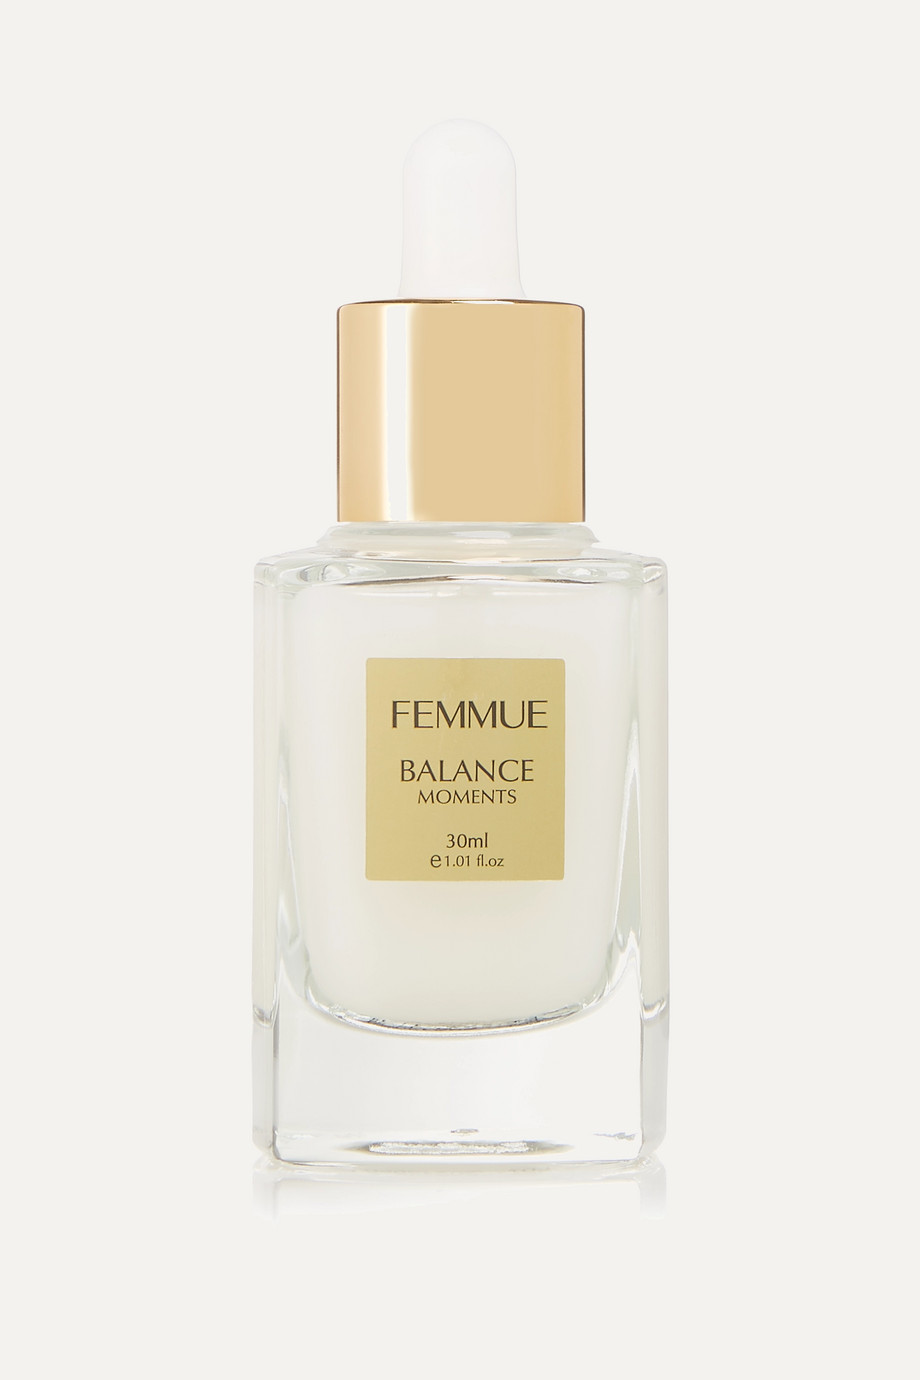 FEMMUE Balance Moments Serum, 30ml